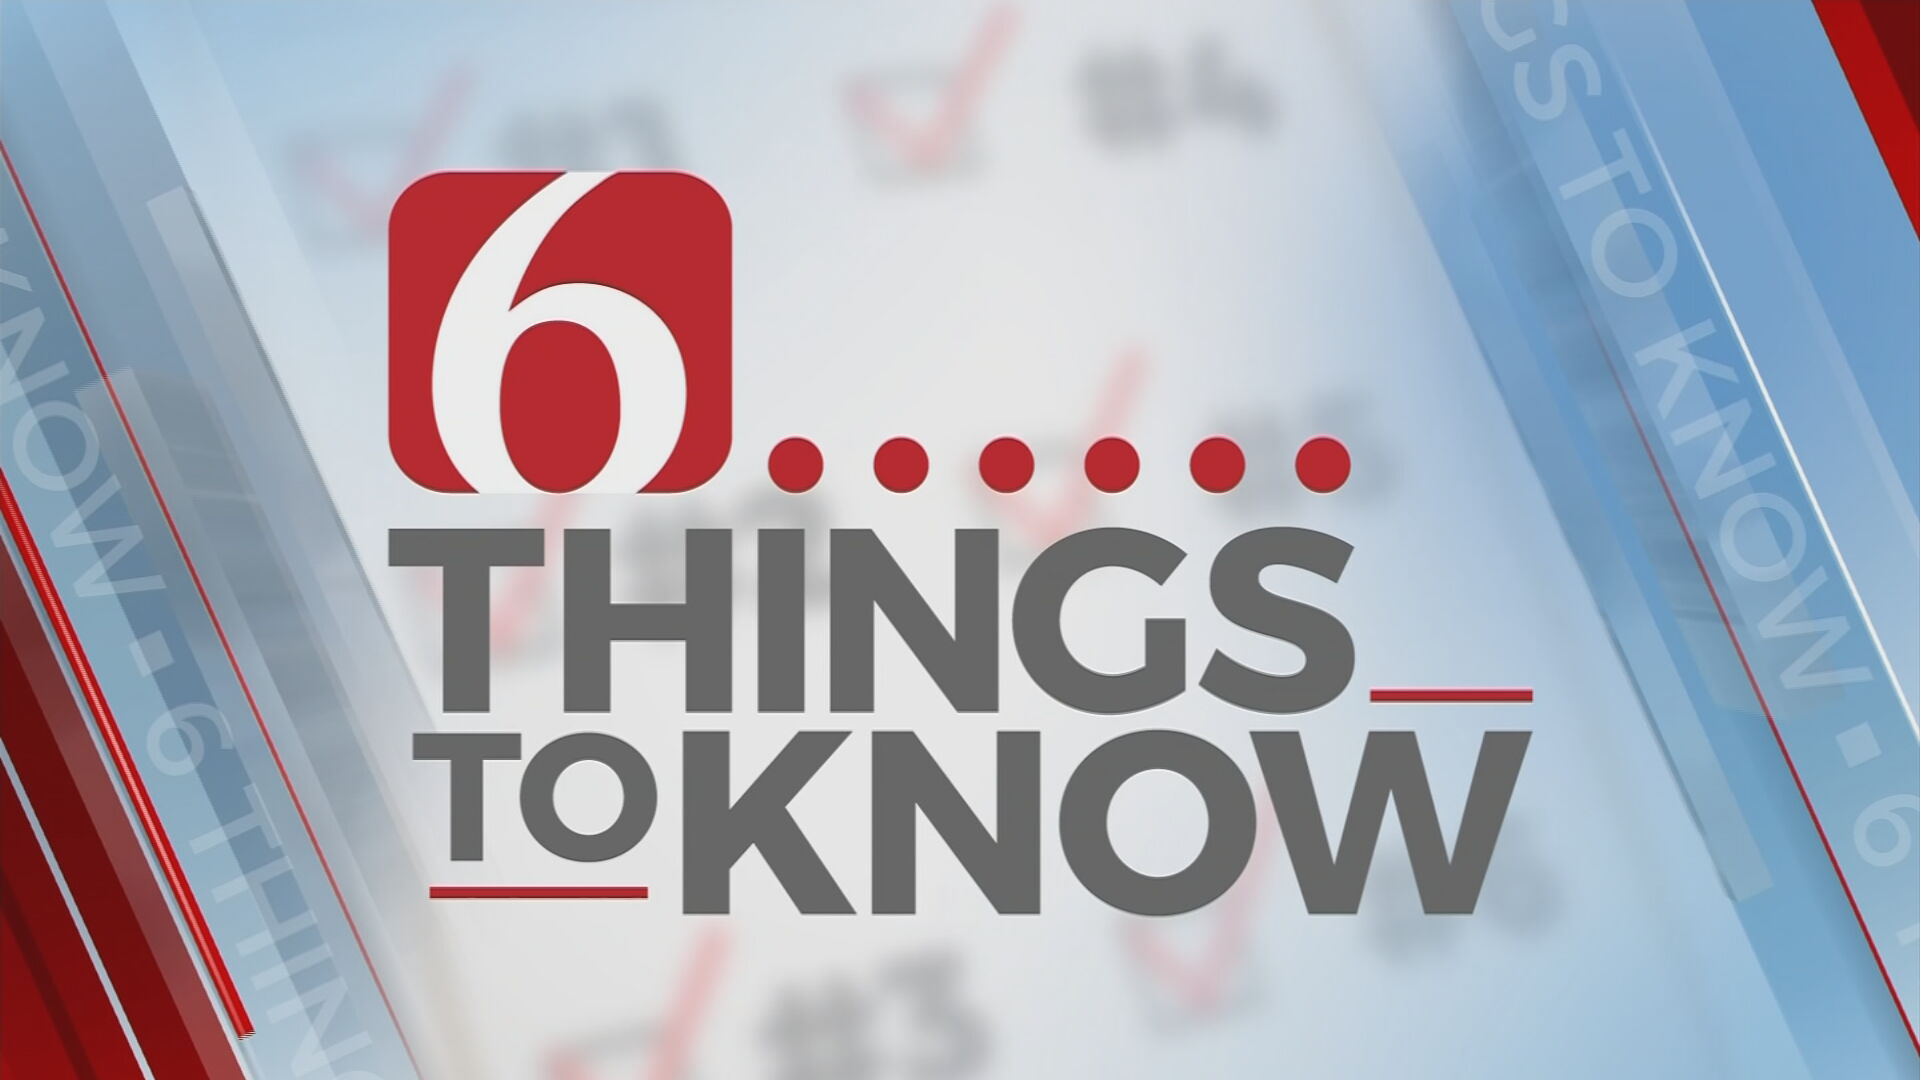 6 Things To Know (Jan 20): Swearing In Of The 46th President